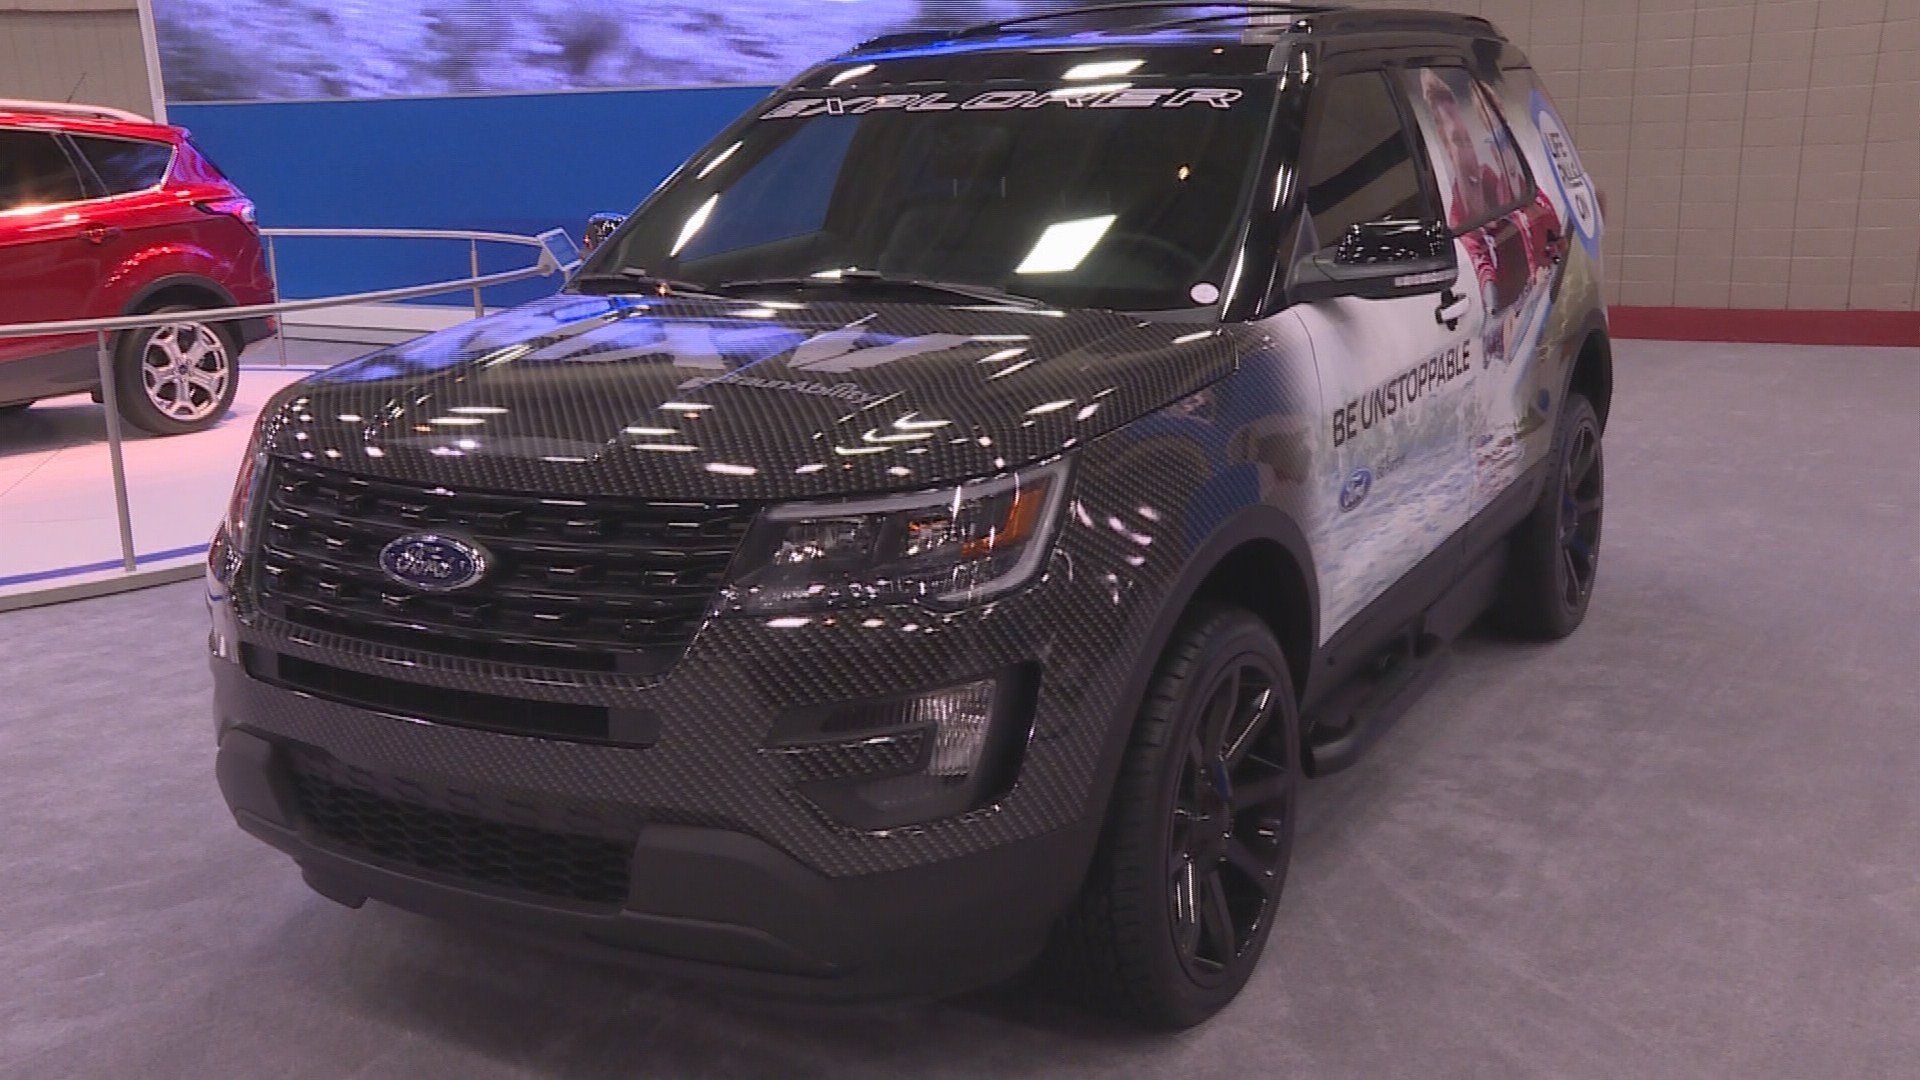 Dallas Auto Show >> Wheelchair-accessible SUV on display at Dallas Auto Show | WFAA.com